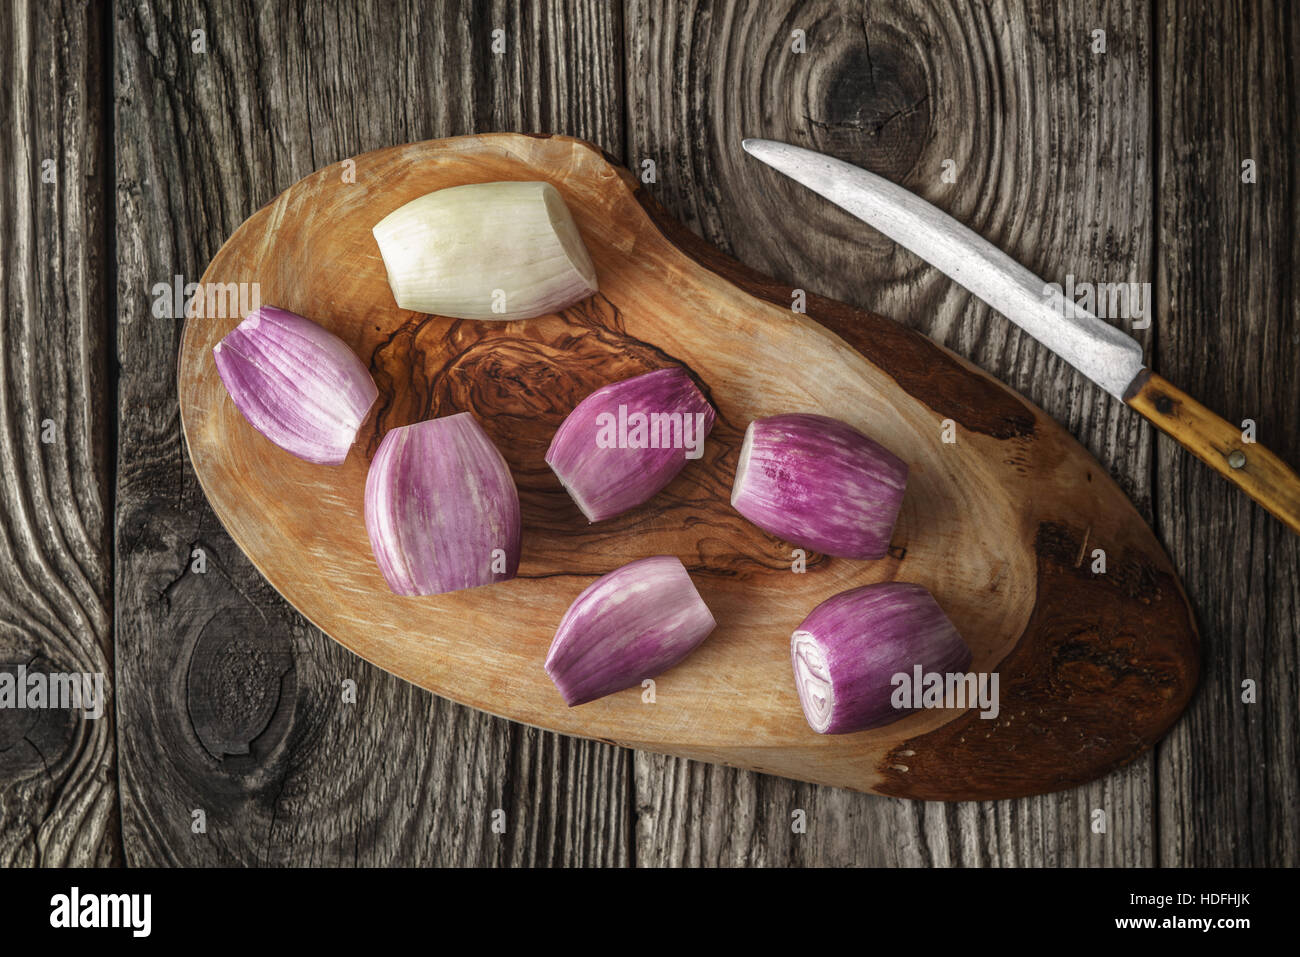 Shallot on the wooden board with knife top view - Stock Image